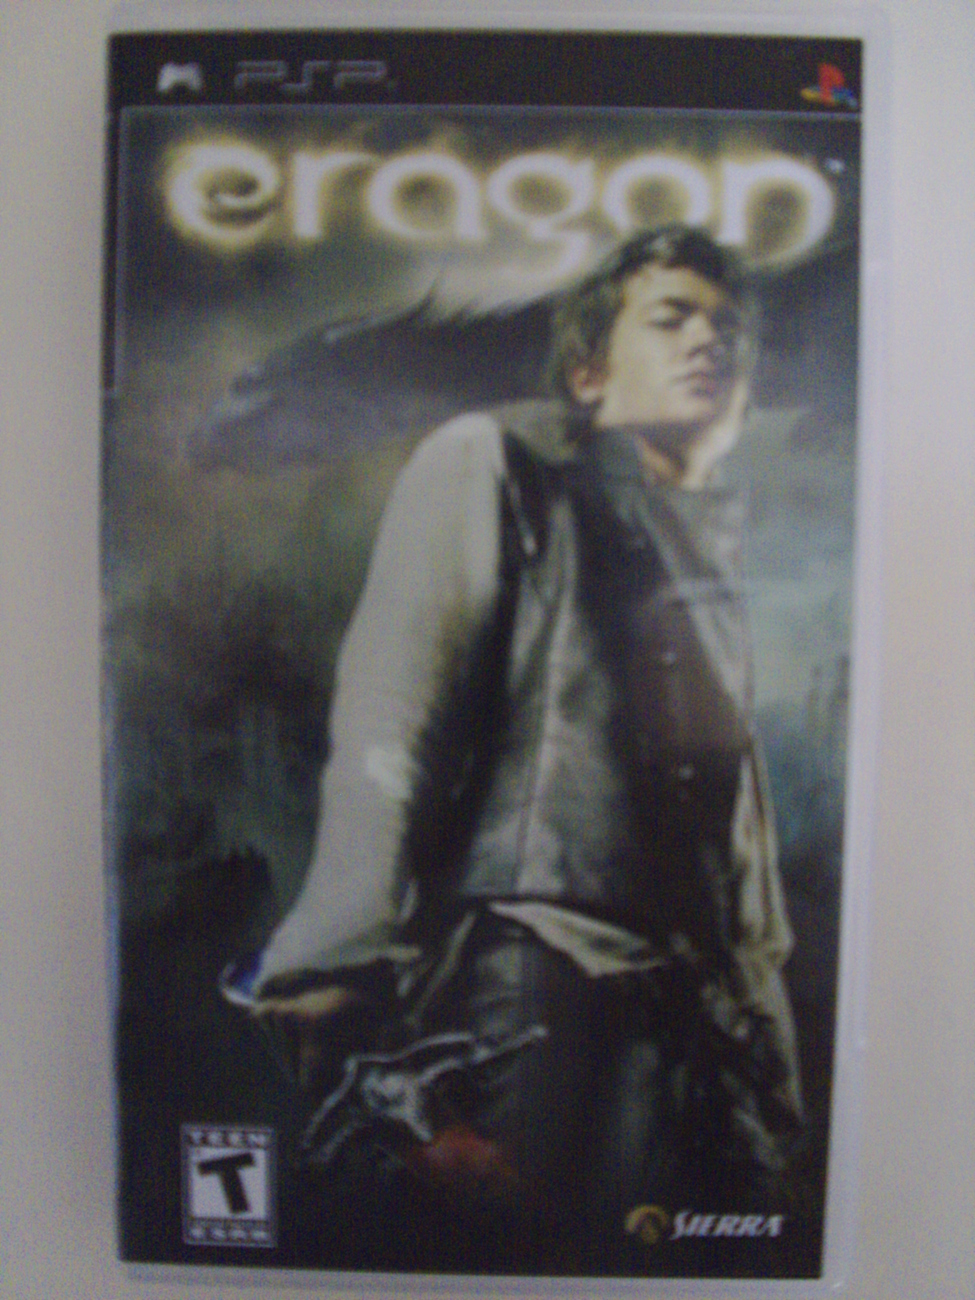 Eragon game PSP Playstation Portable